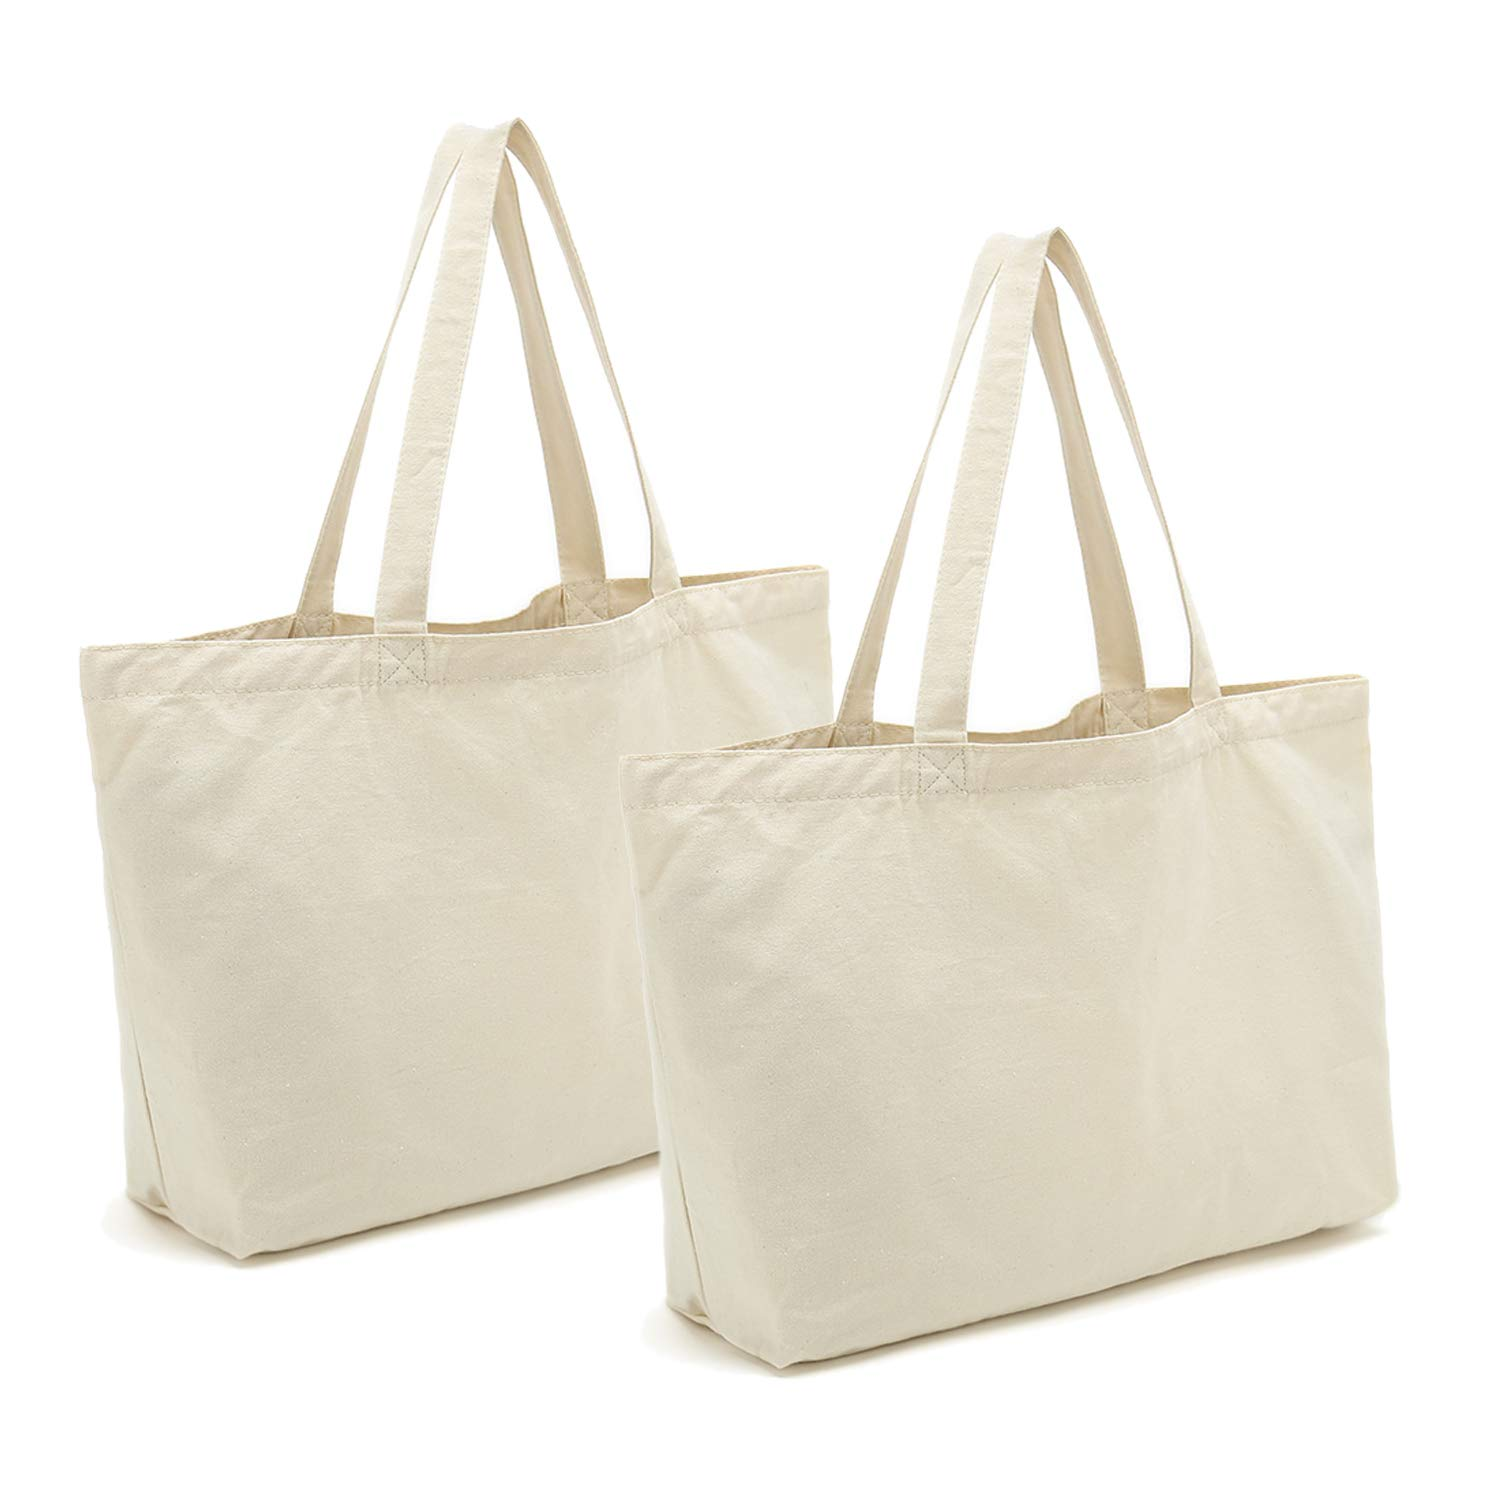 b6e2b5ee8 Amazon.com: Canvas Tote Bags Heavy Duty Reusable Cotton Grocery Shopping  Bags with Bottom Gusset for DIY Crafts Gift Bag Wedding 2pcs, 12.2